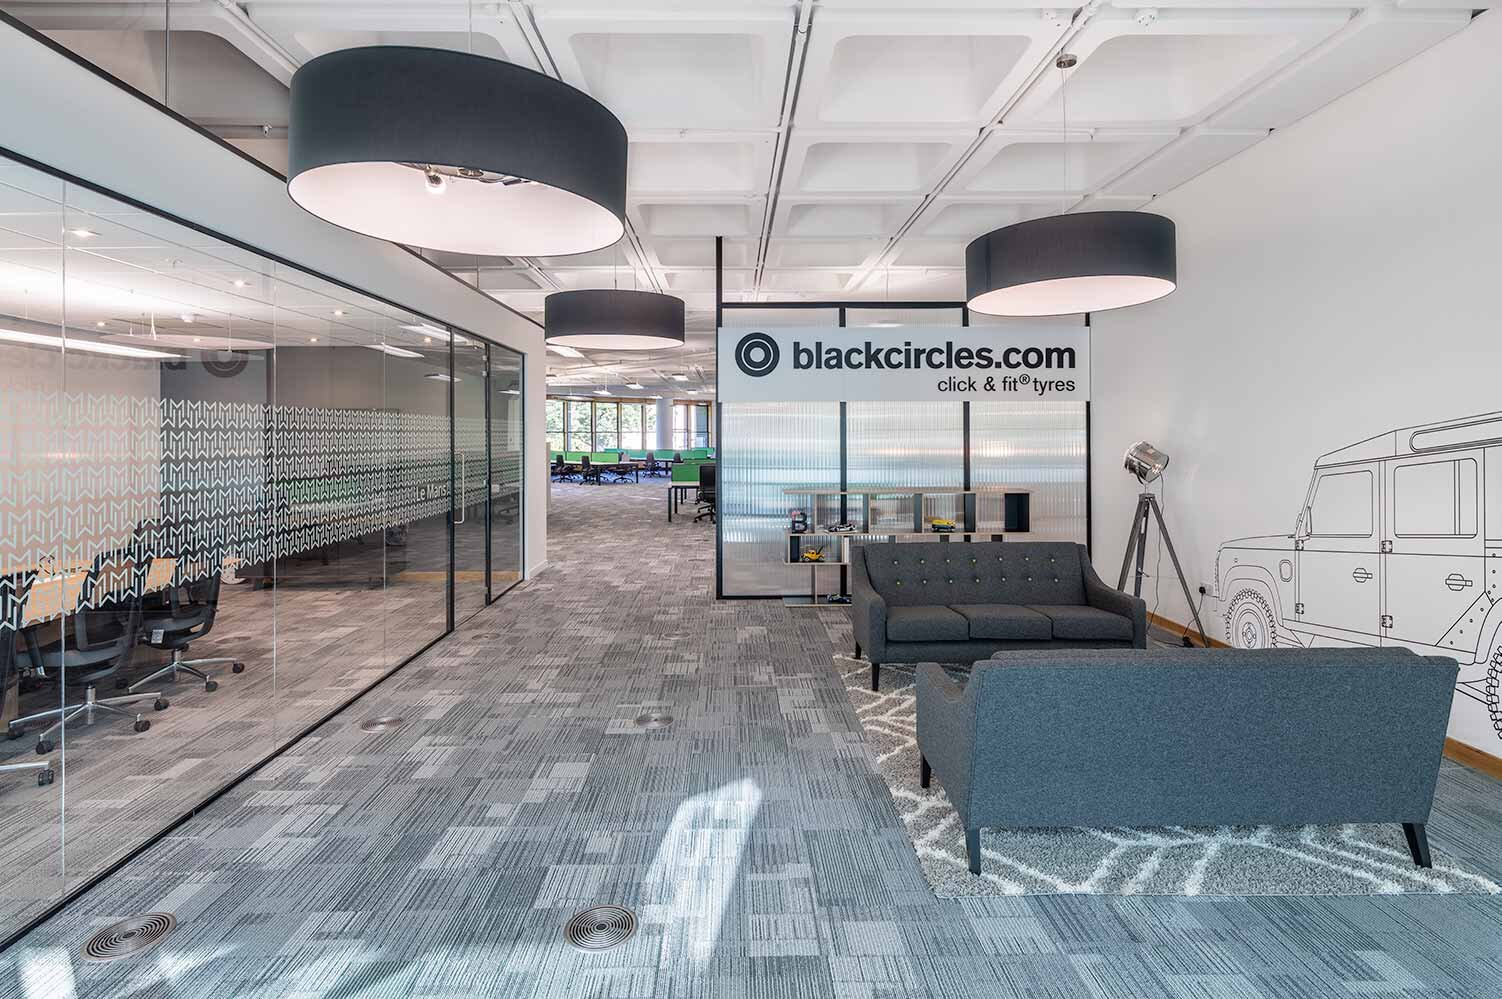 Interior design fit out and furniture for blackcircles edinburgh